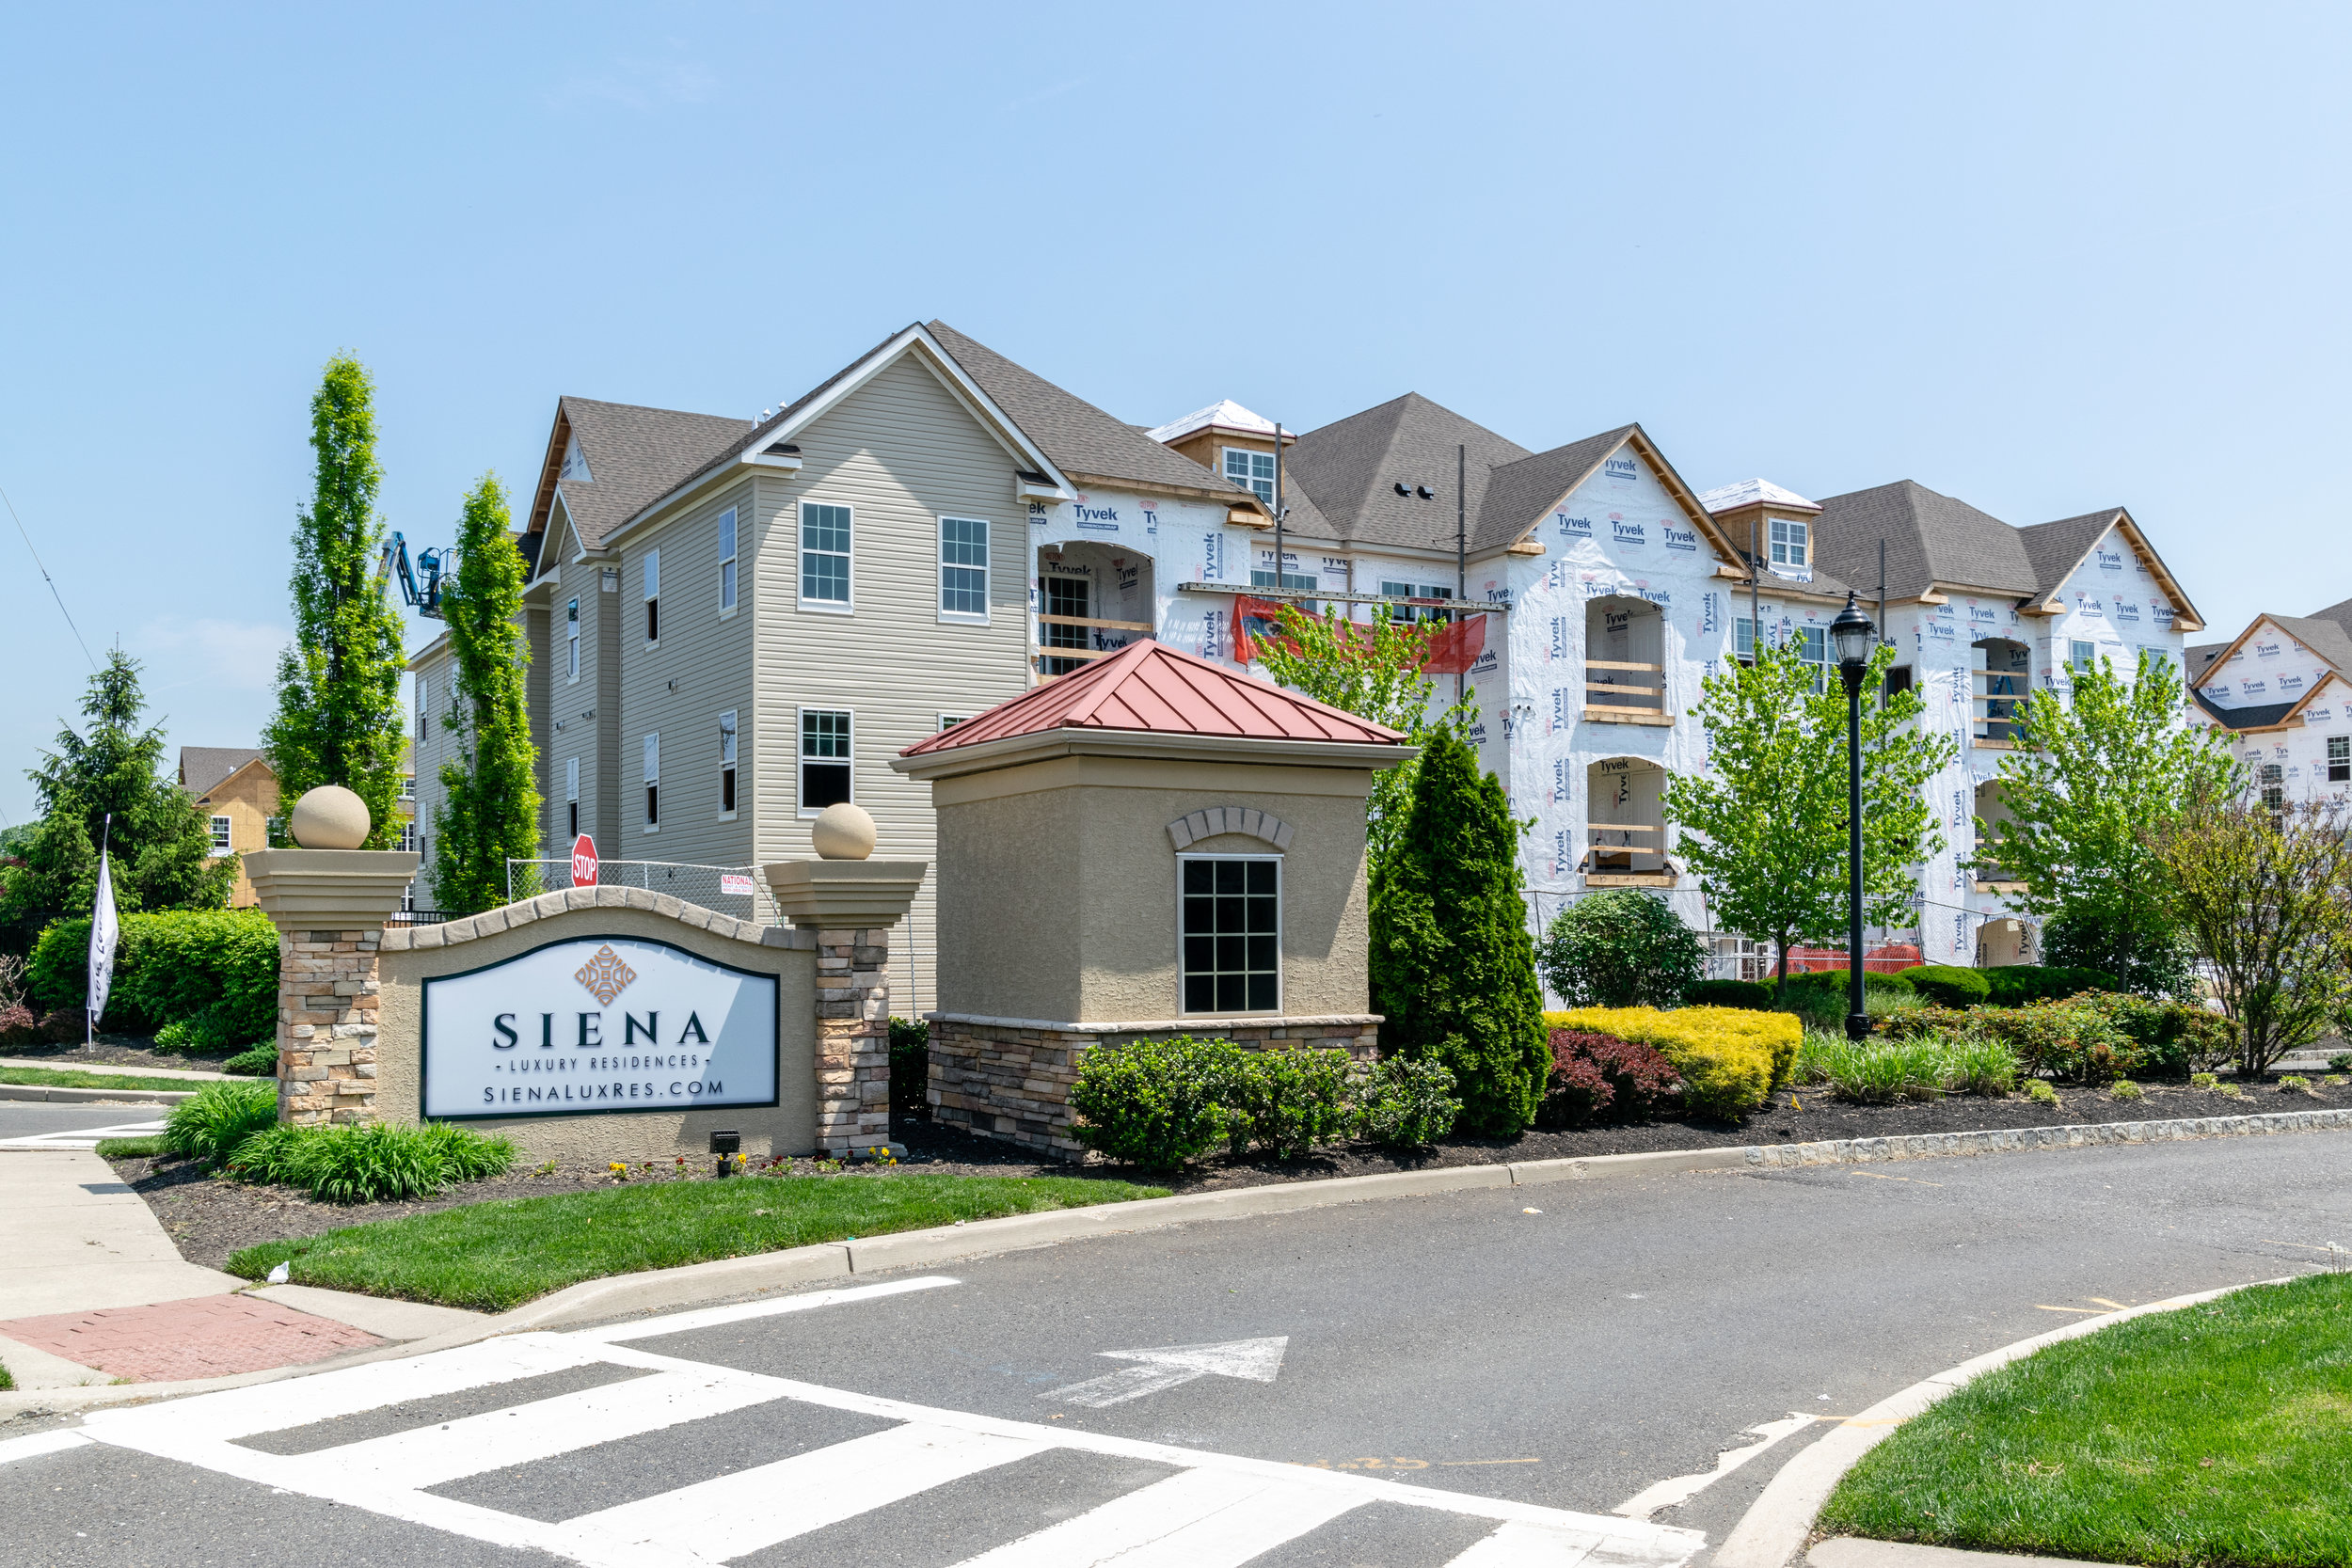 Siena Luxury Residences Senior Housing Cinnaminson, NJ Built by March Construction